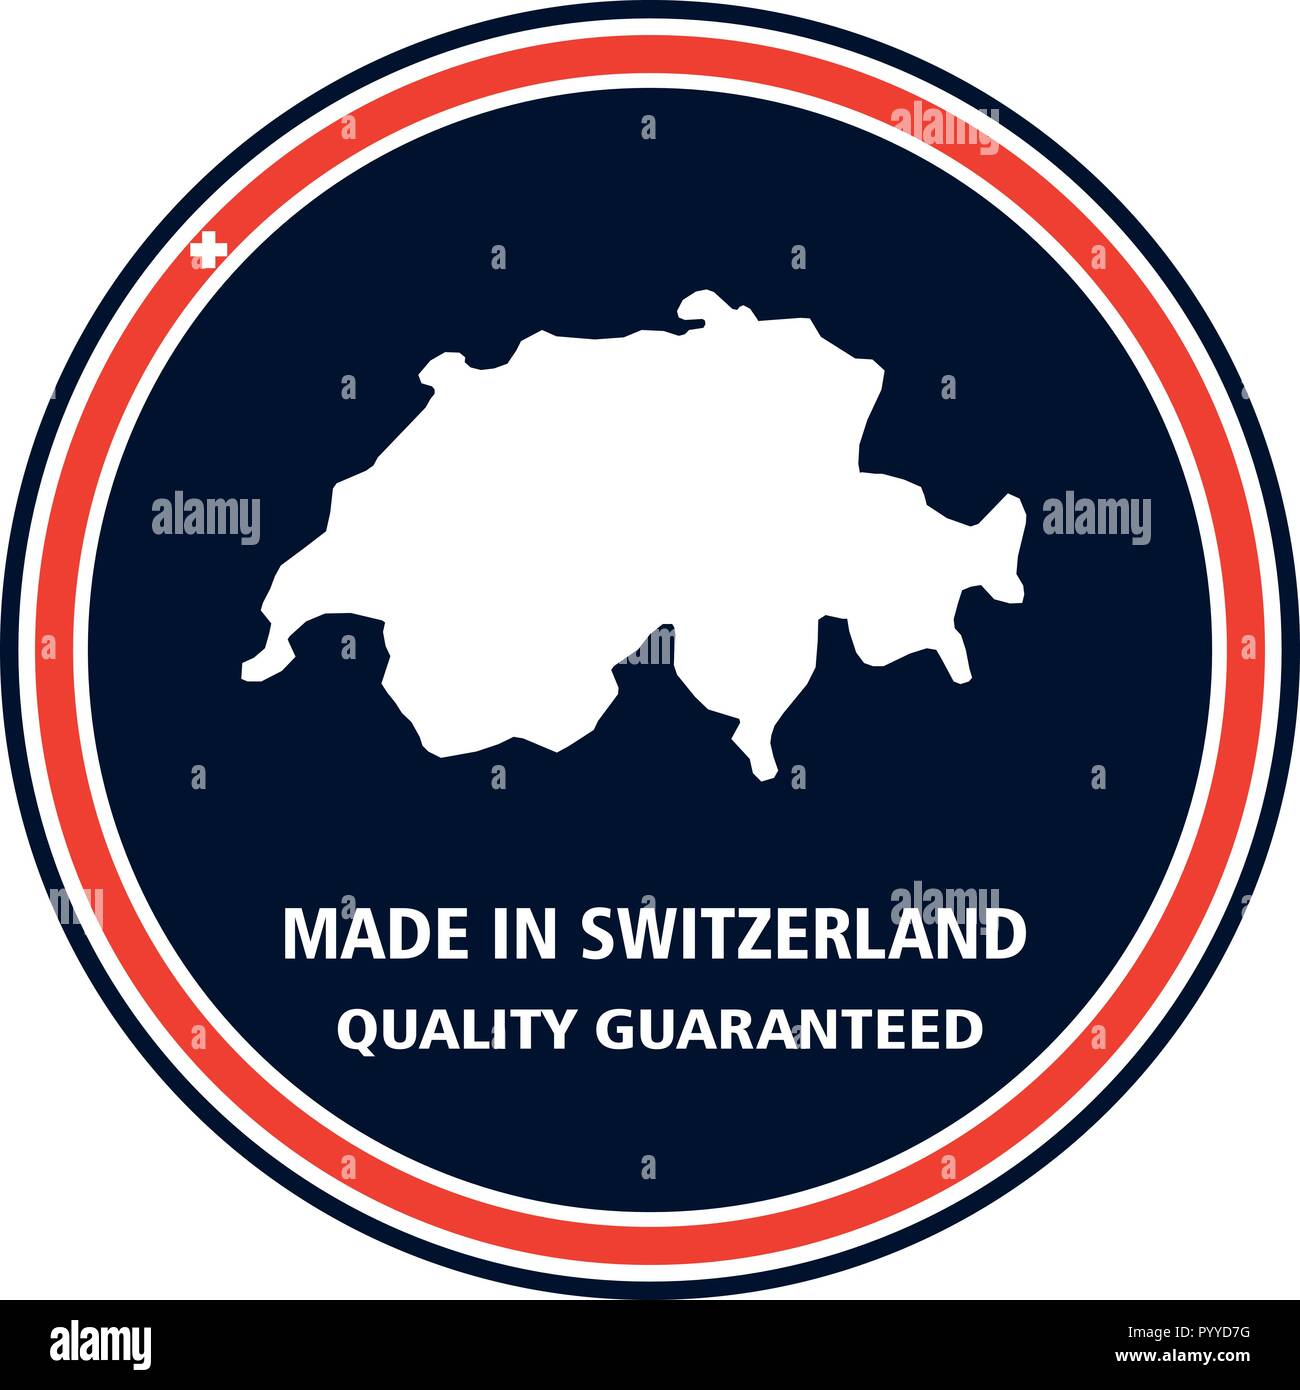 Made in Switzerland quality stamp. Vector illustration - Stock Image